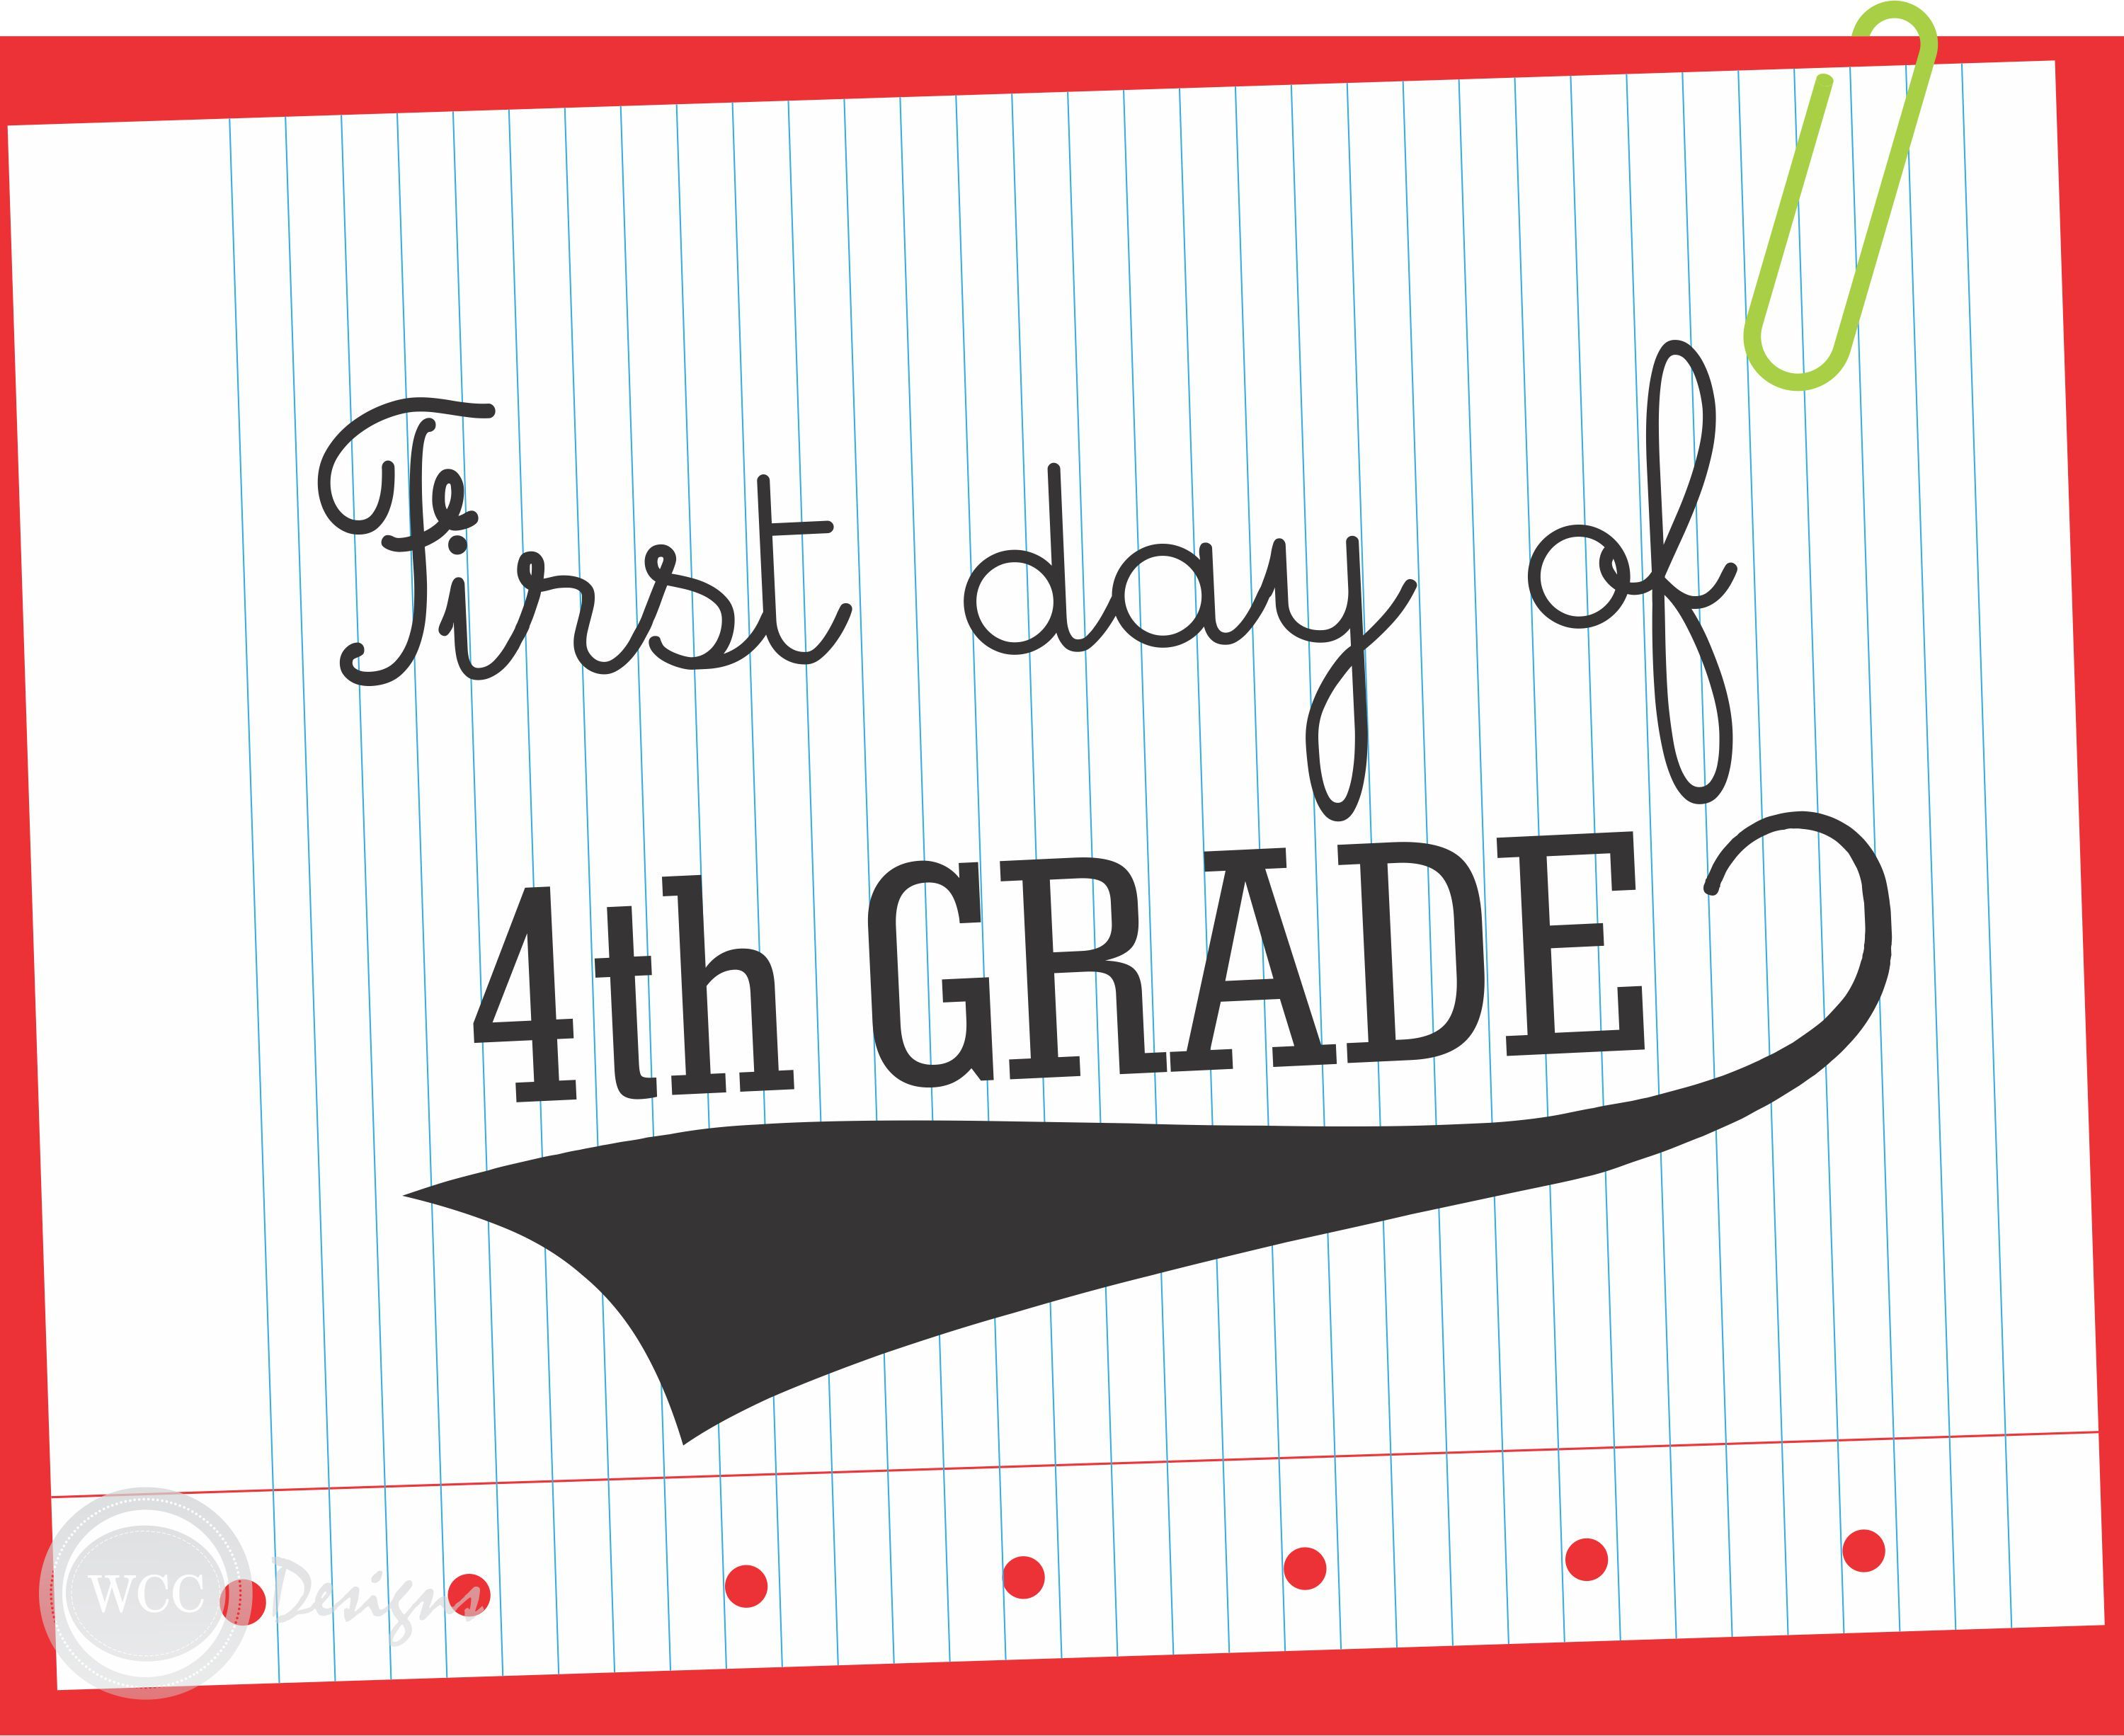 Free First Day Of School Printable Signs From Wcc Designs